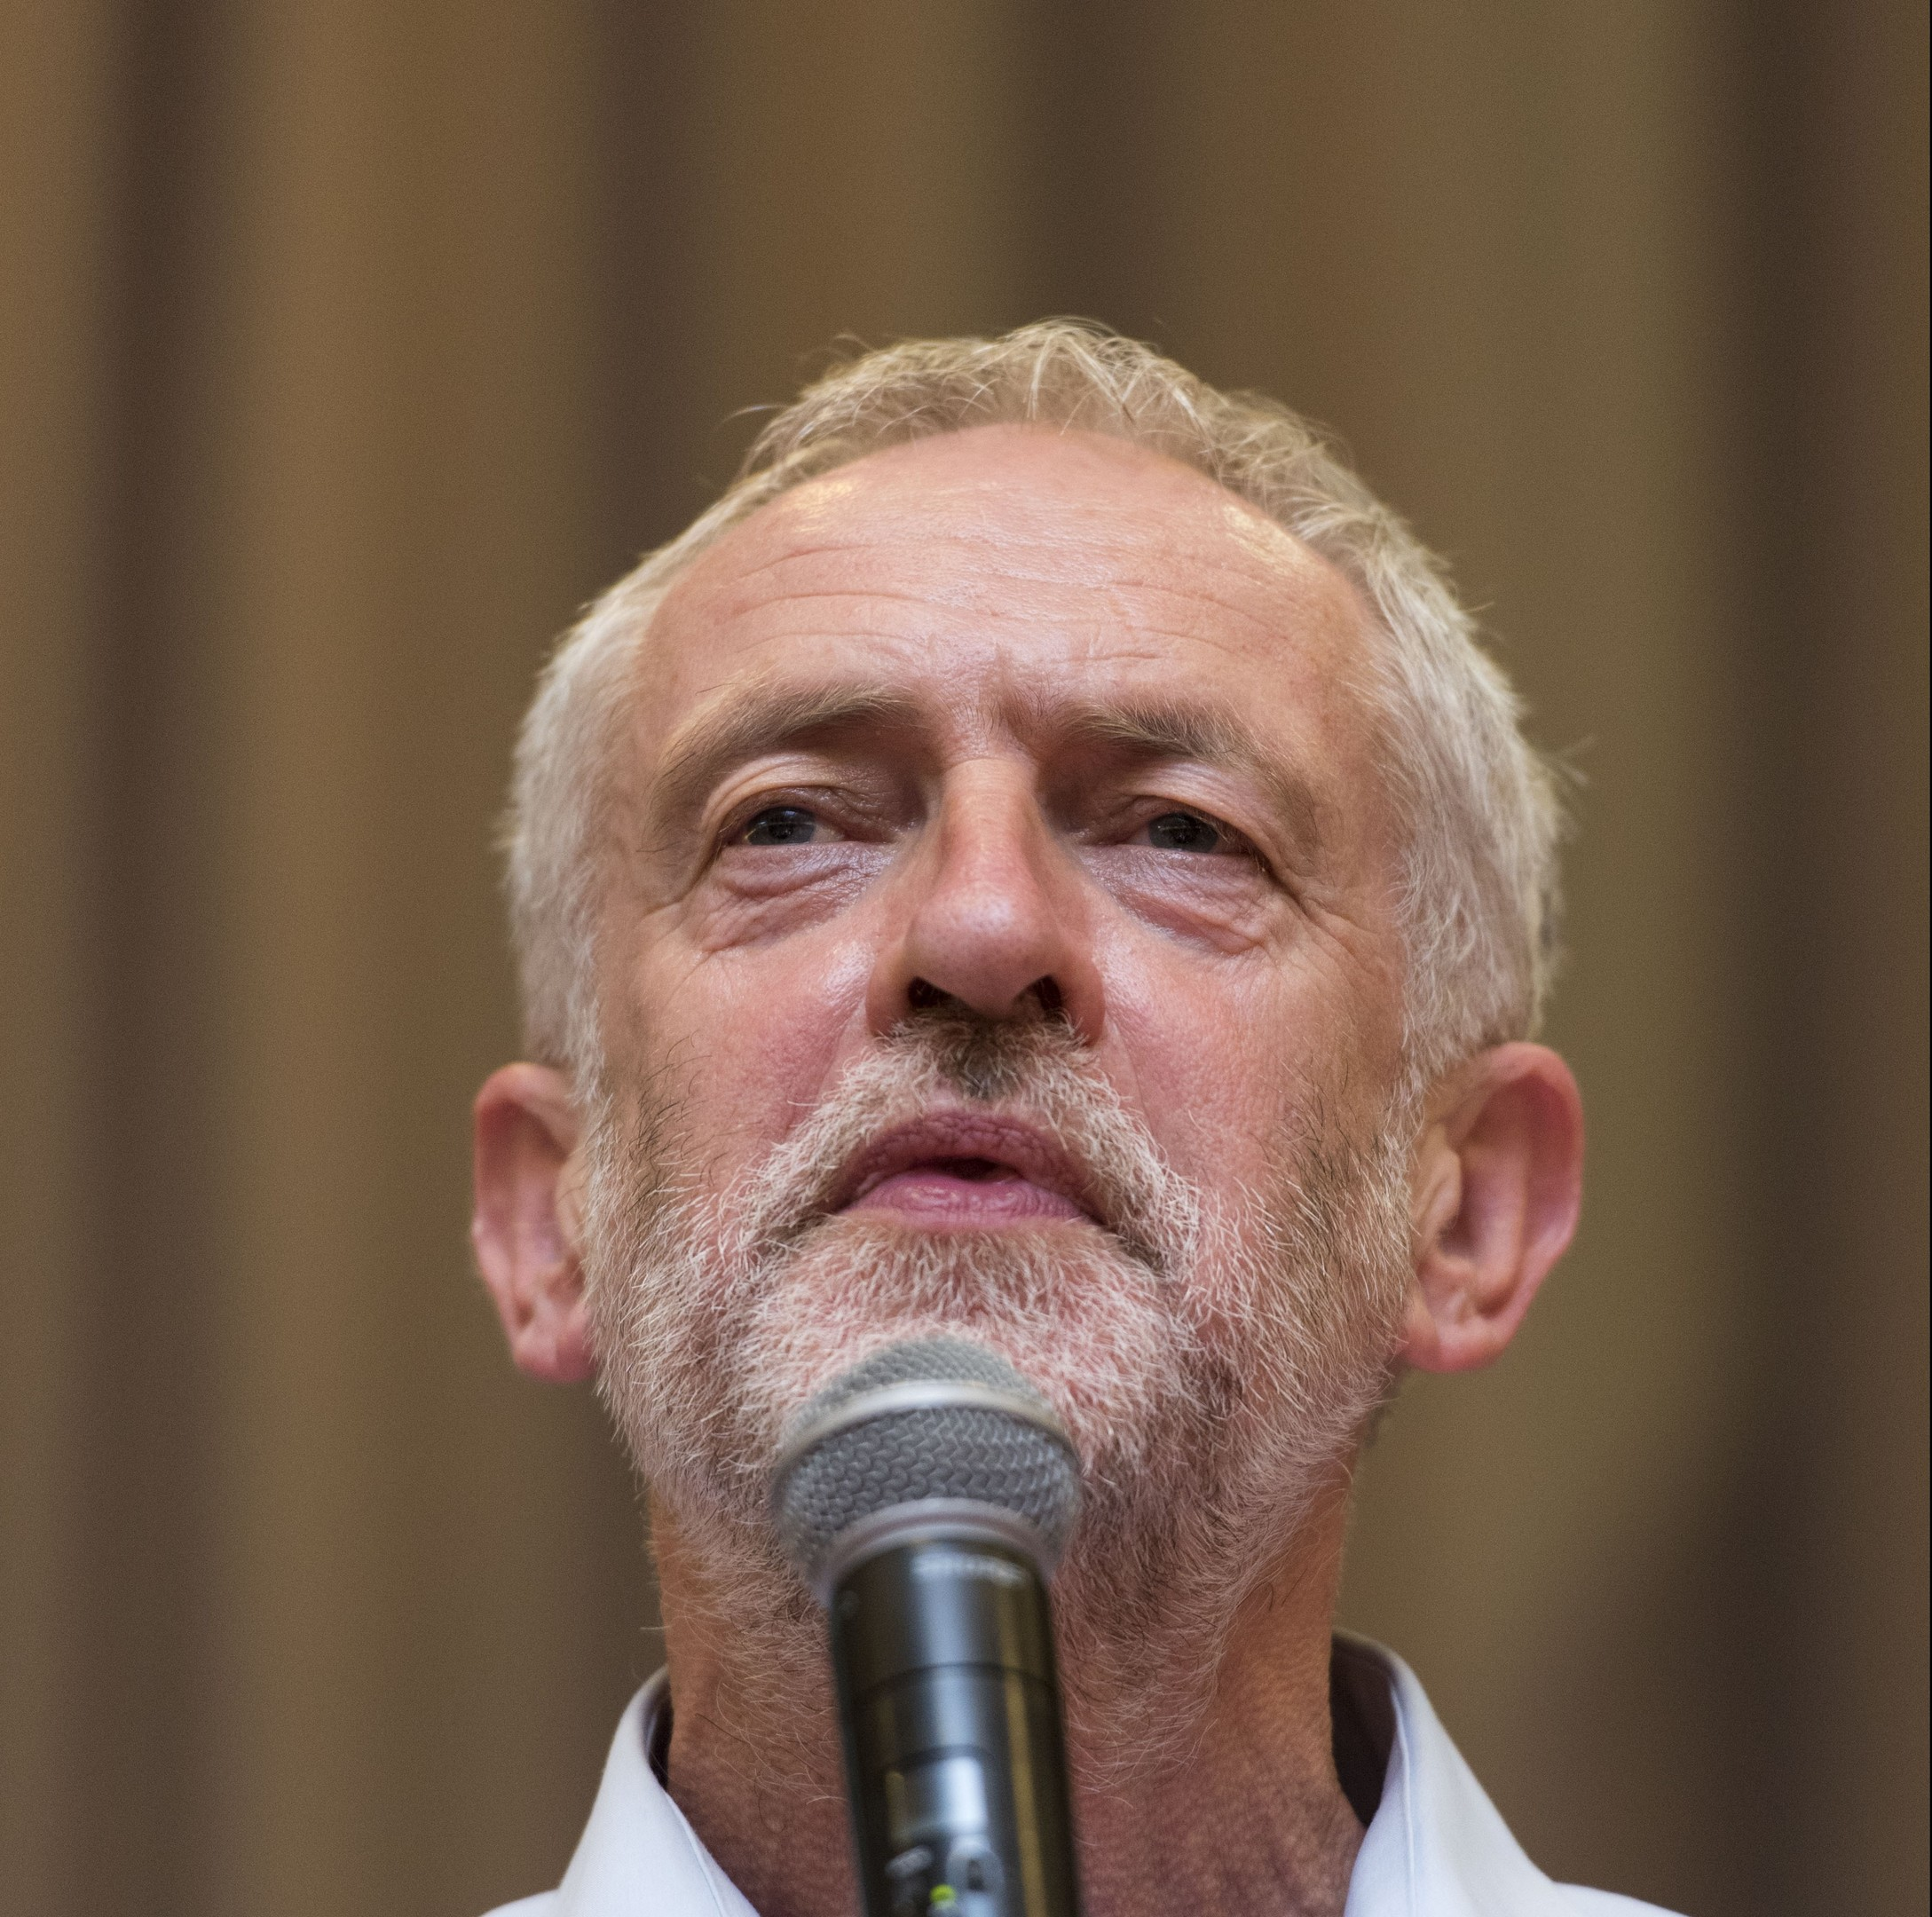 Labour leadership candidate Jeremy Corbyn attends a rally at the Mercure Cardiff Holland House Hotel on August 11